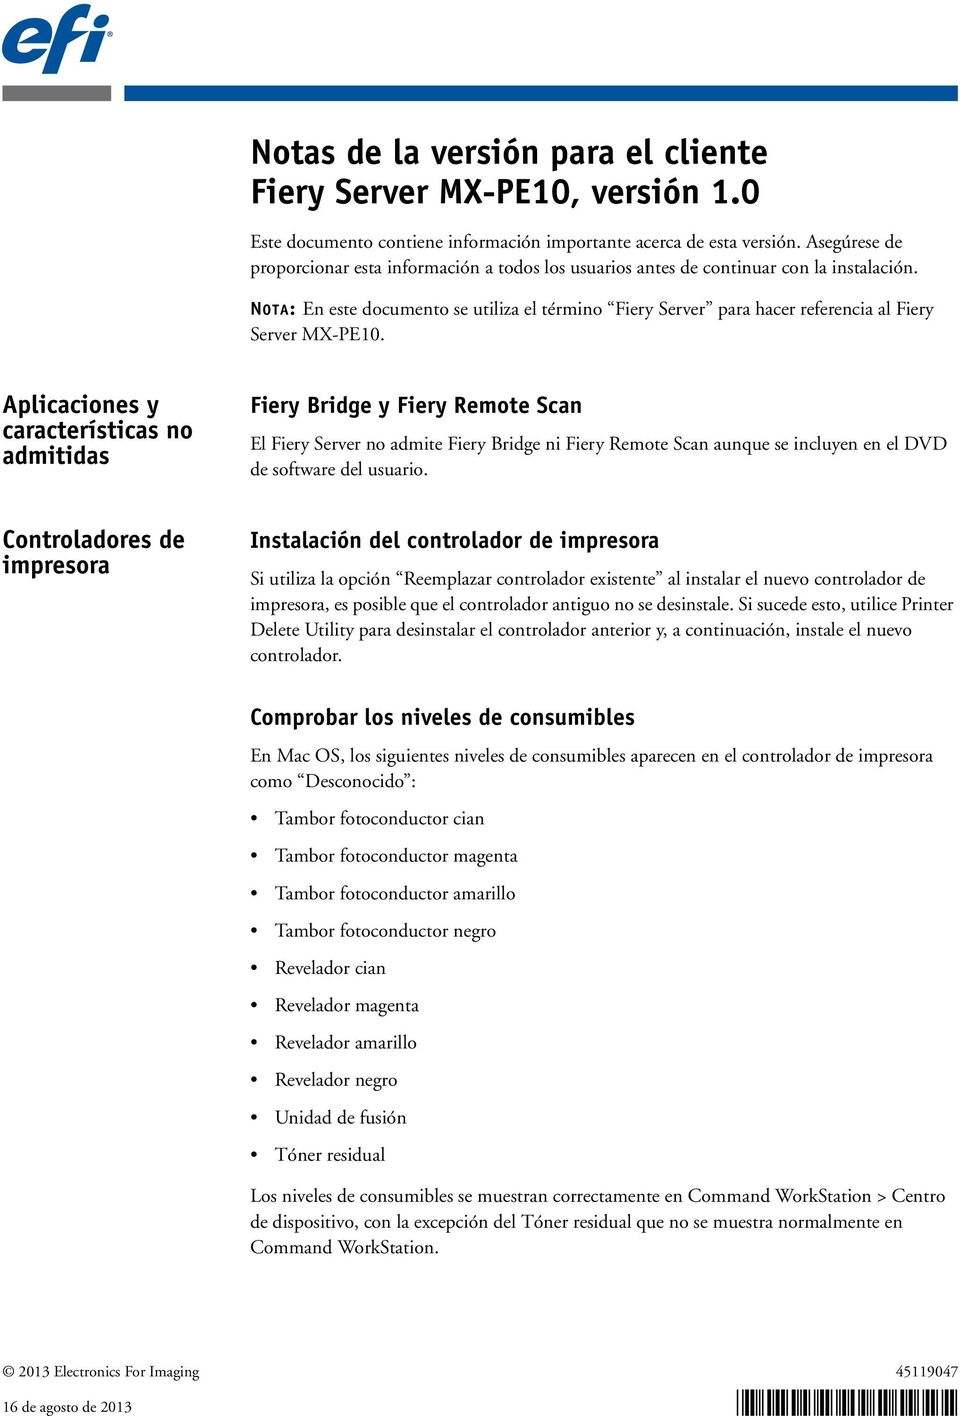 NOTA: En este documento se utiliza el término Fiery Server para hacer referencia al Fiery Server MX-PE10.